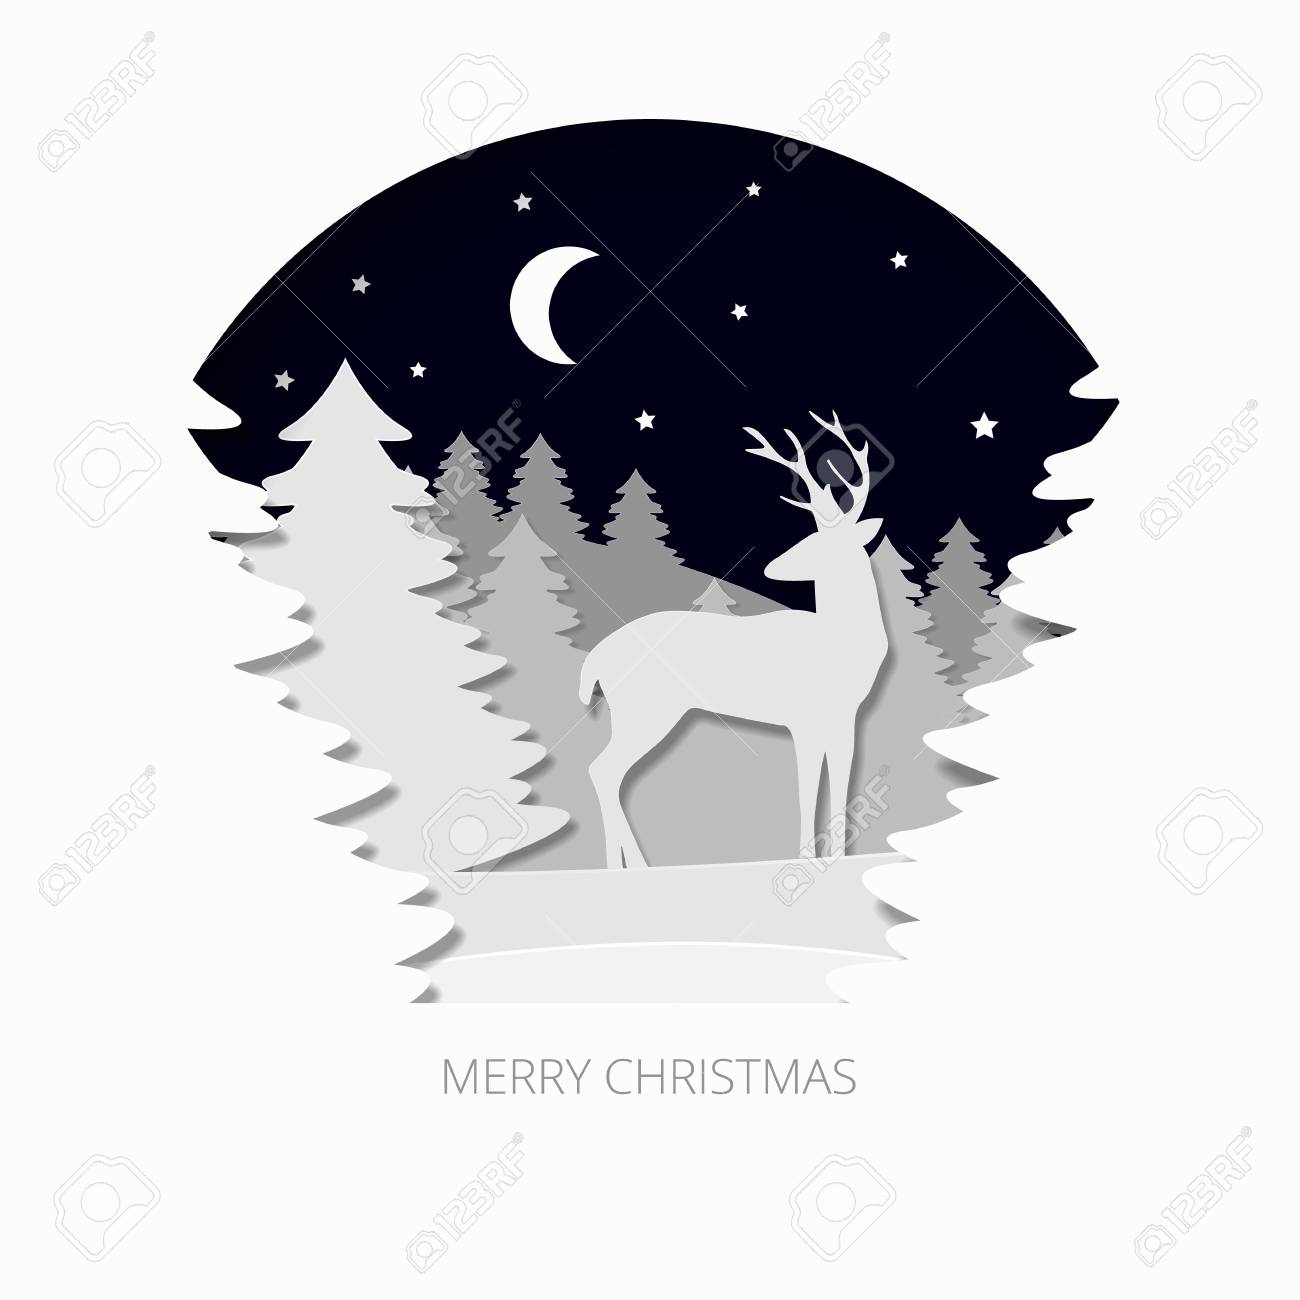 Merry christmas 3d abstract paper cut illlustration of christmas merry christmas 3d abstract paper cut illlustration of christmas tree deer moon and stars kristyandbryce Image collections